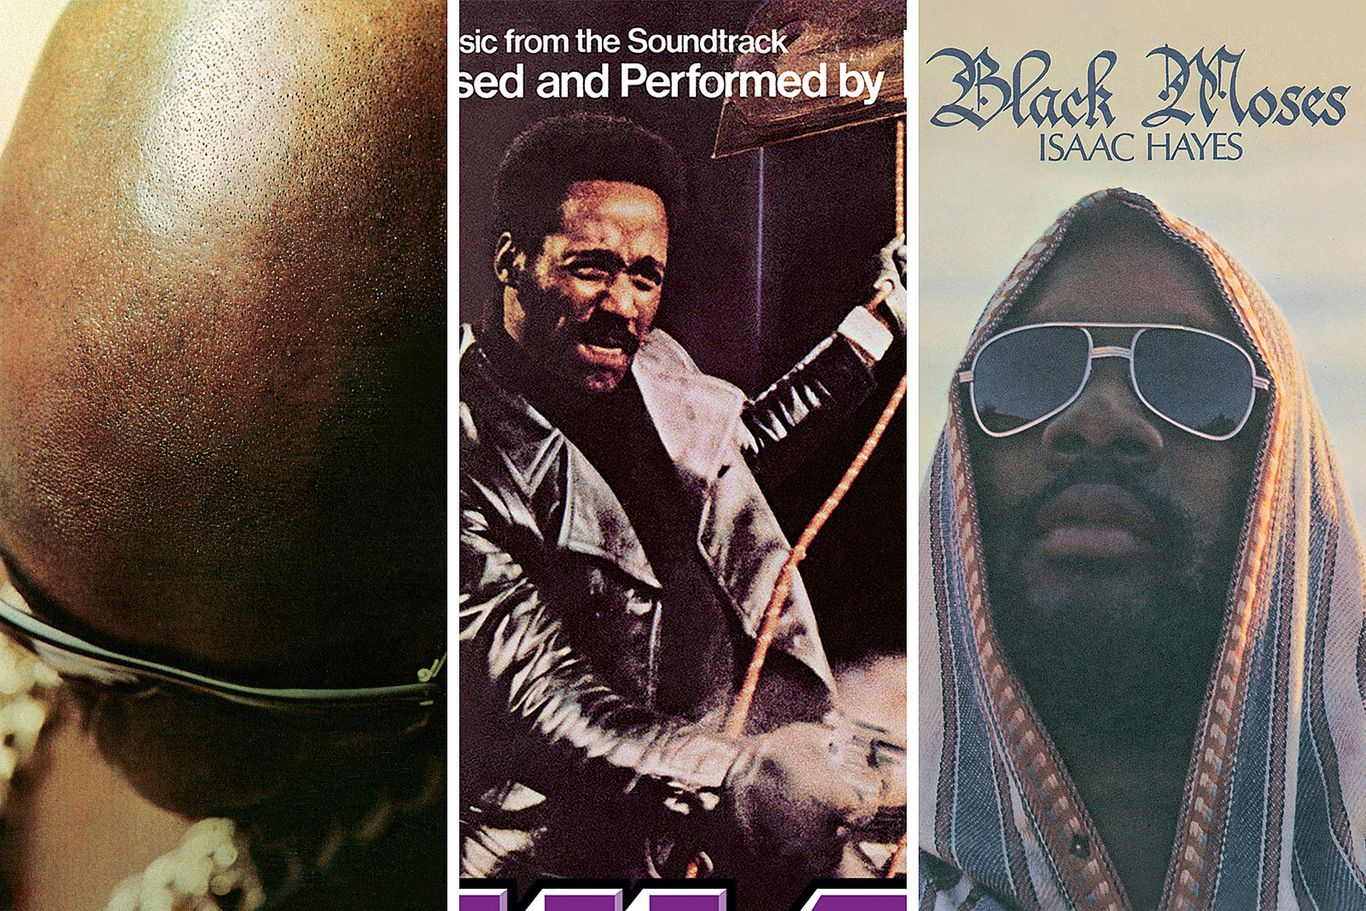 Three iconic releases by Isaac Hayes: Hot Buttered Soul (1969), Shaft (1971) & Black Moses (1971)